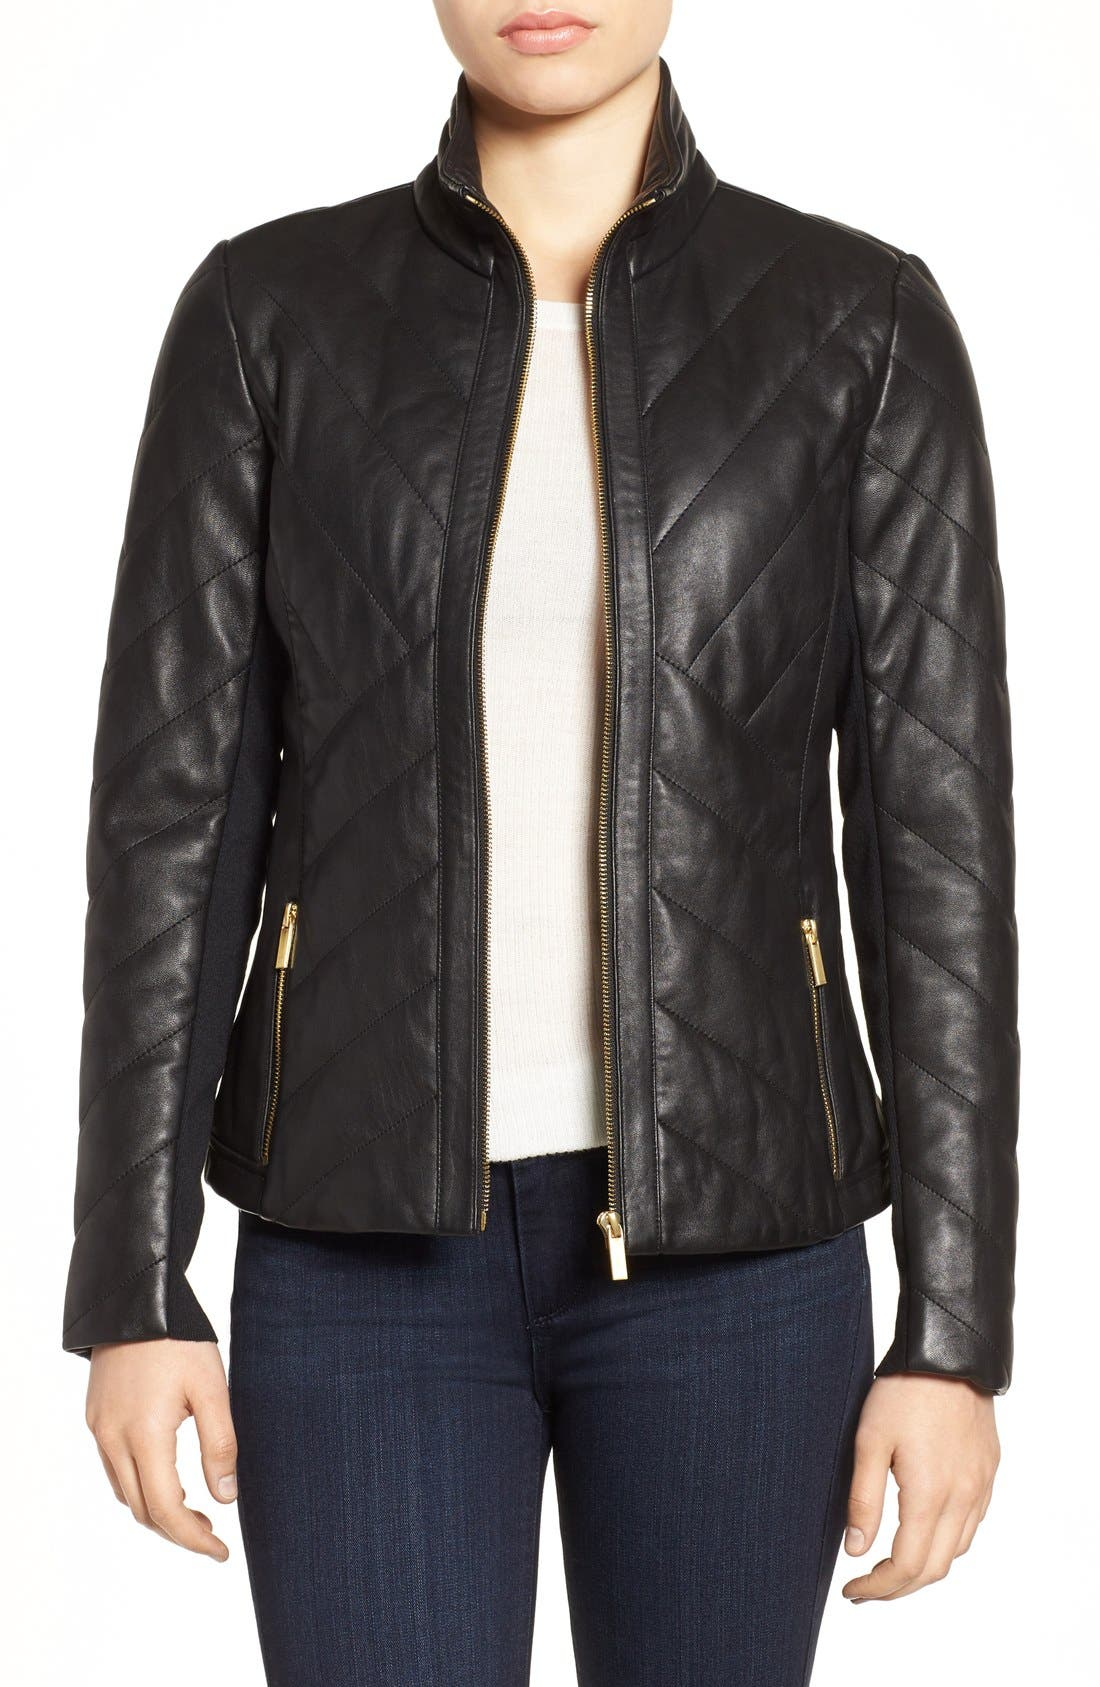 Badgley Mischka Eloise Quilted Leather Moto Jacket,                             Main thumbnail 1, color,                             001